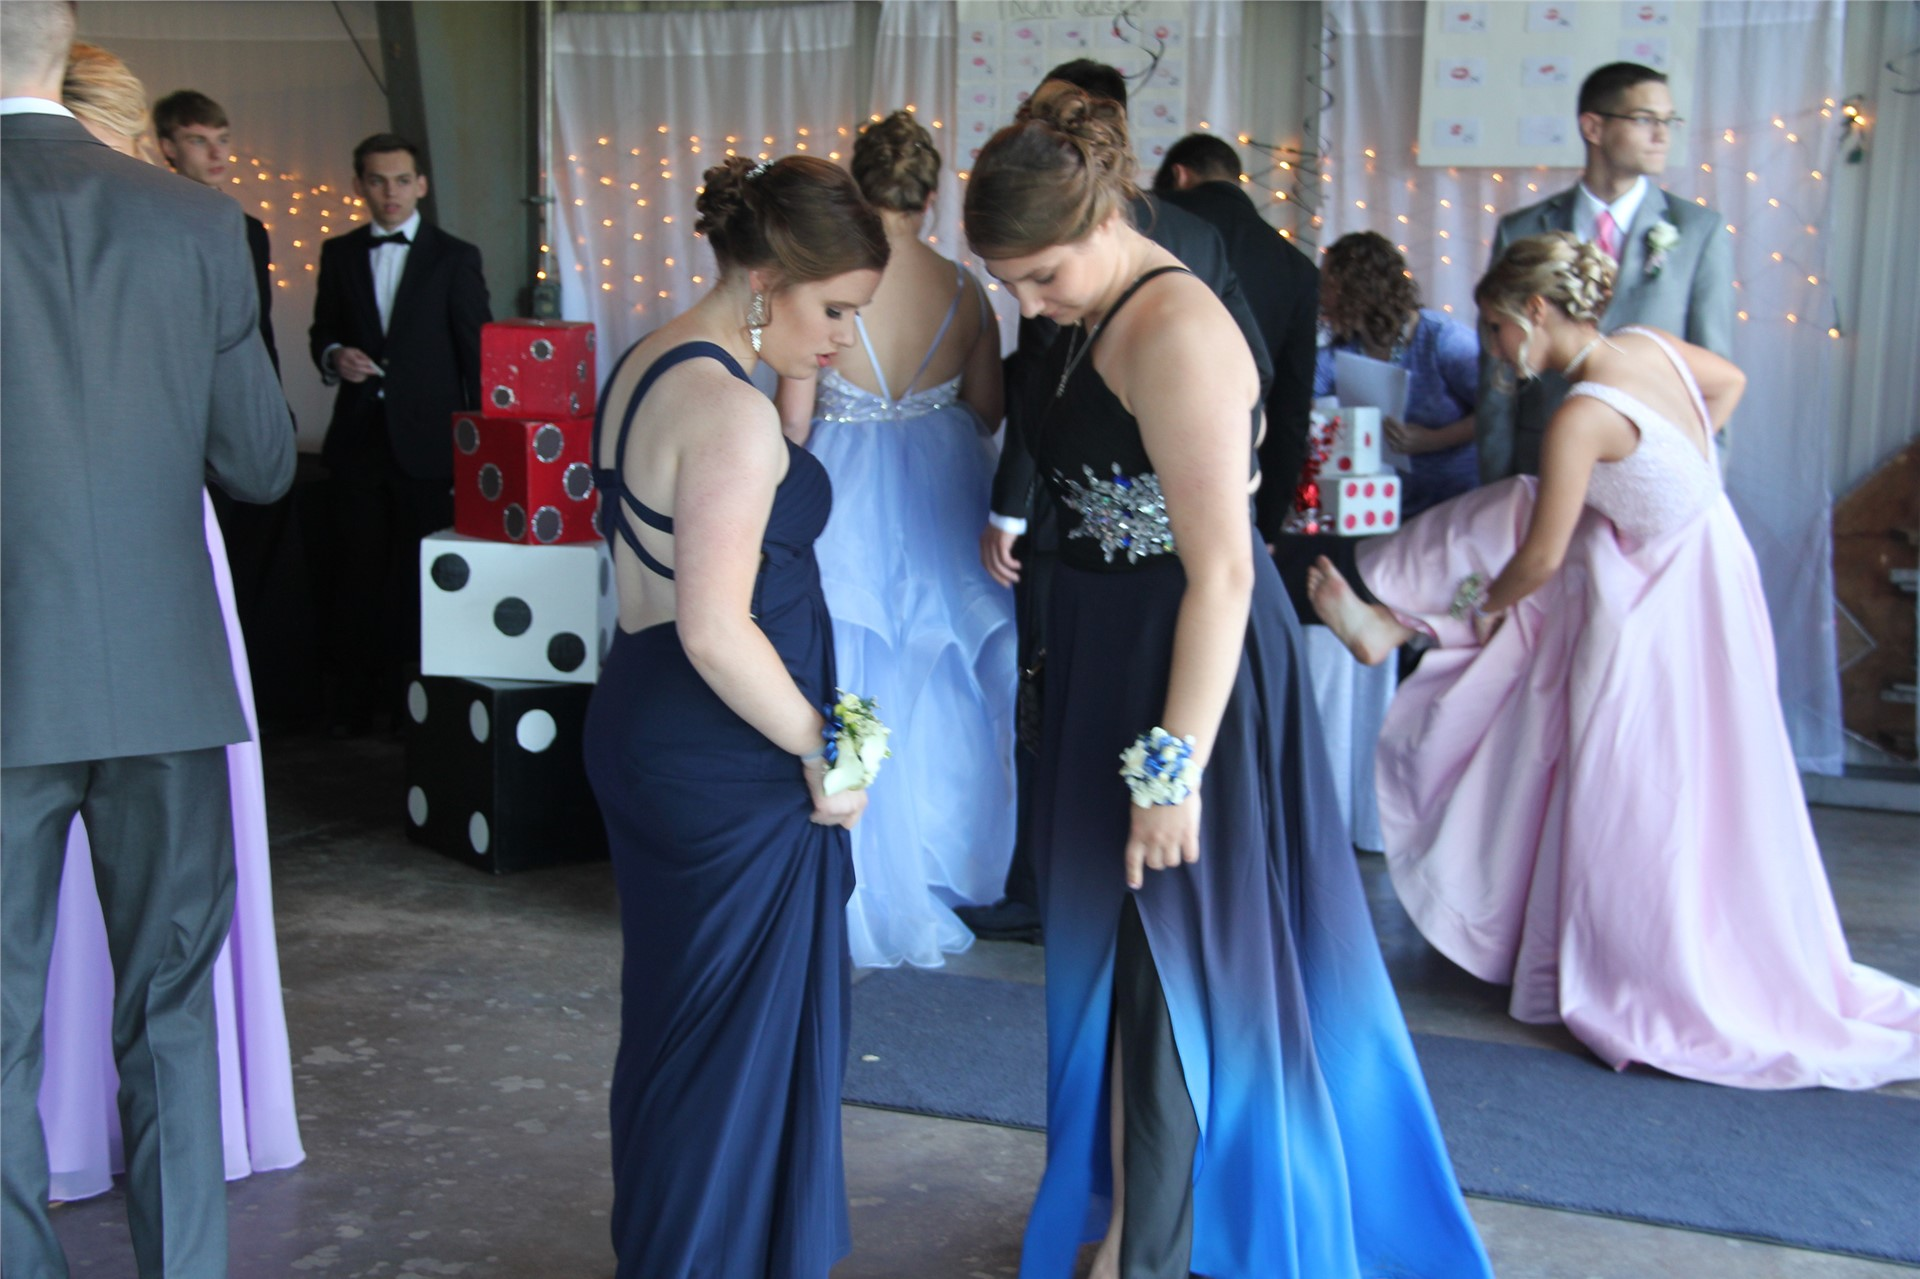 two female students talk inside of prom venue